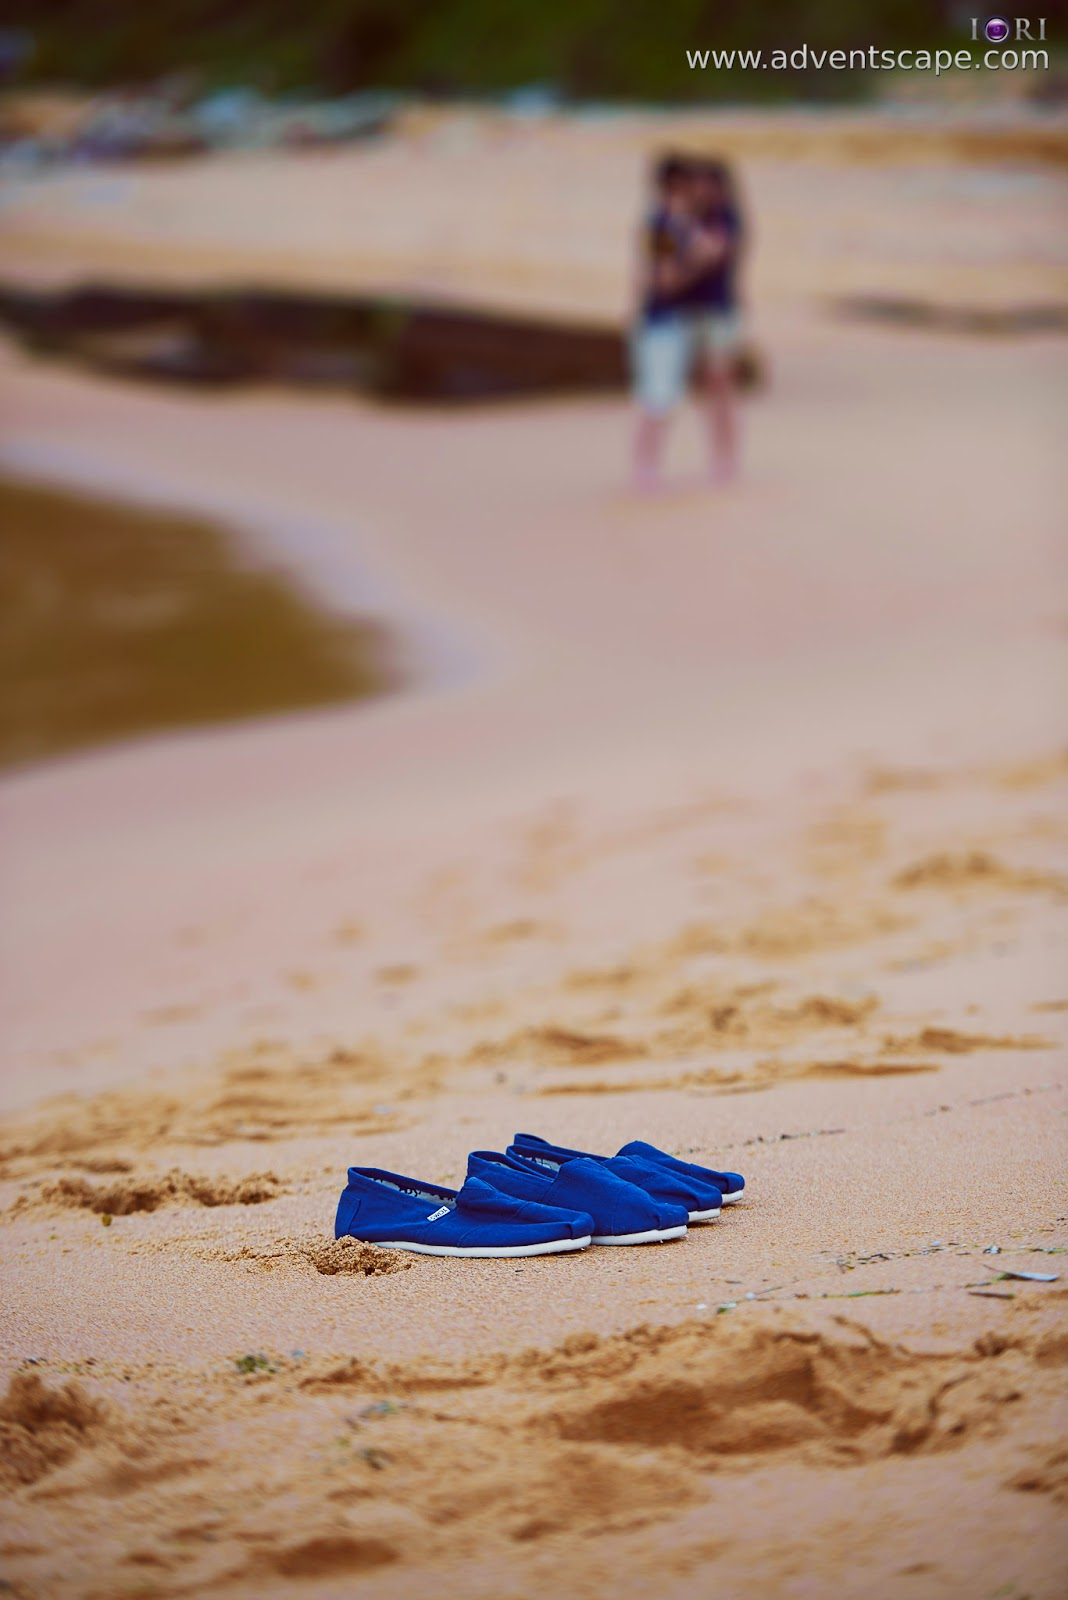 adventscape, Australia, Australian Landscape Photographer, New South Wales, Northern Beaches, NSW, Philip Avellana, prenup, Turimetta, beach, Erik Deveza, Marianne Kaw, walking, barefoot, shoes